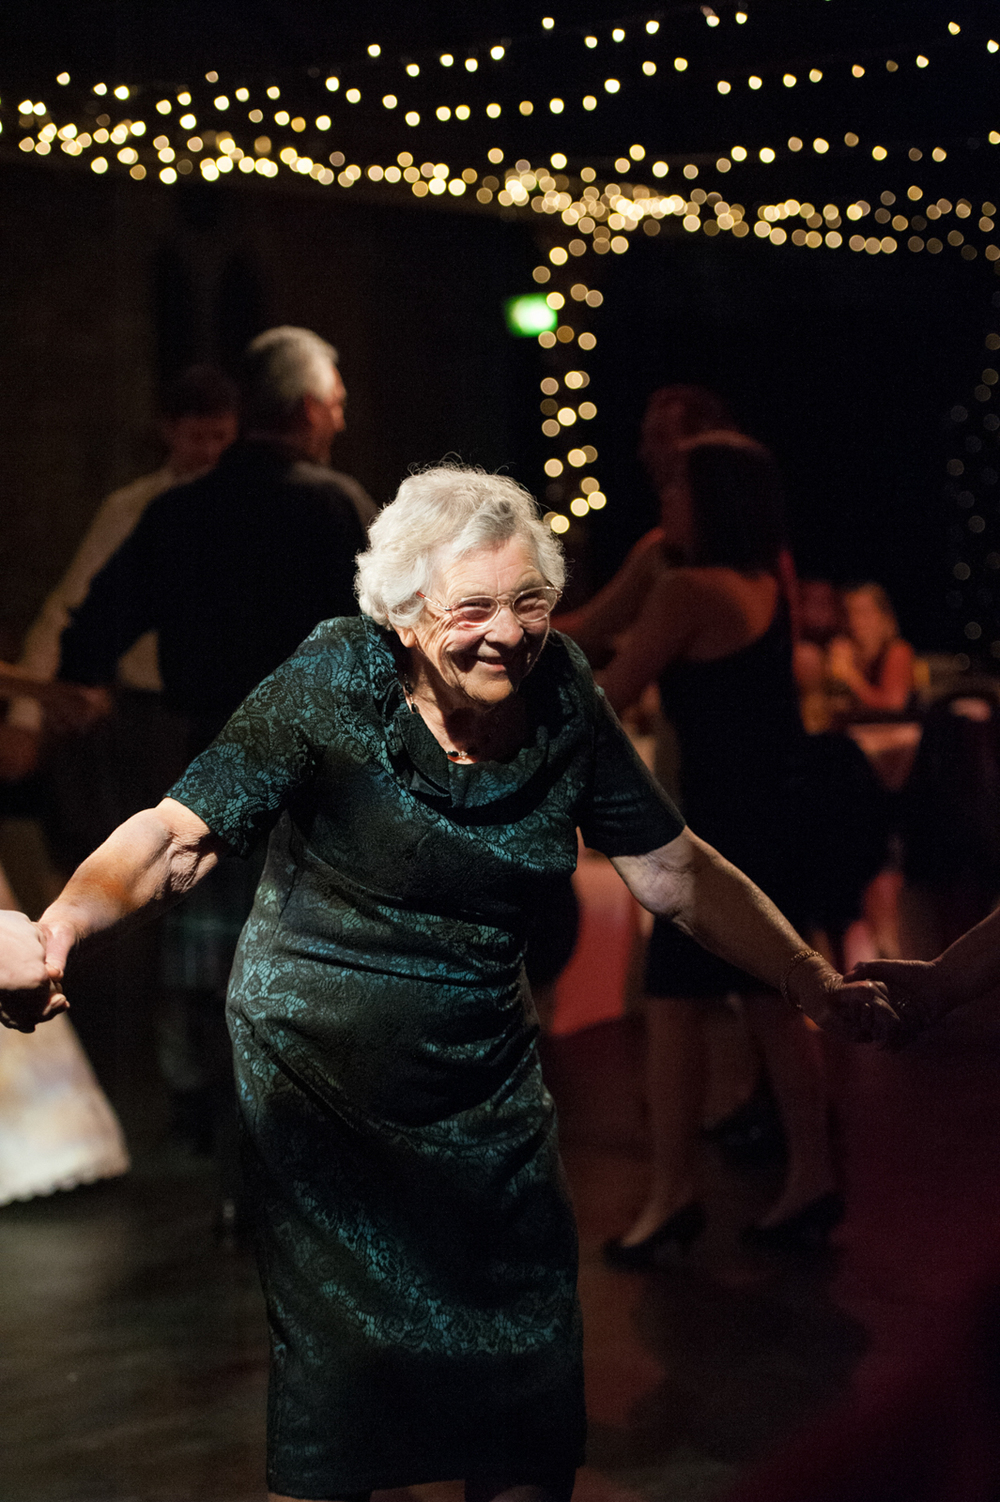 dancing-wedding-granny-cottiers-glasgow.jpg